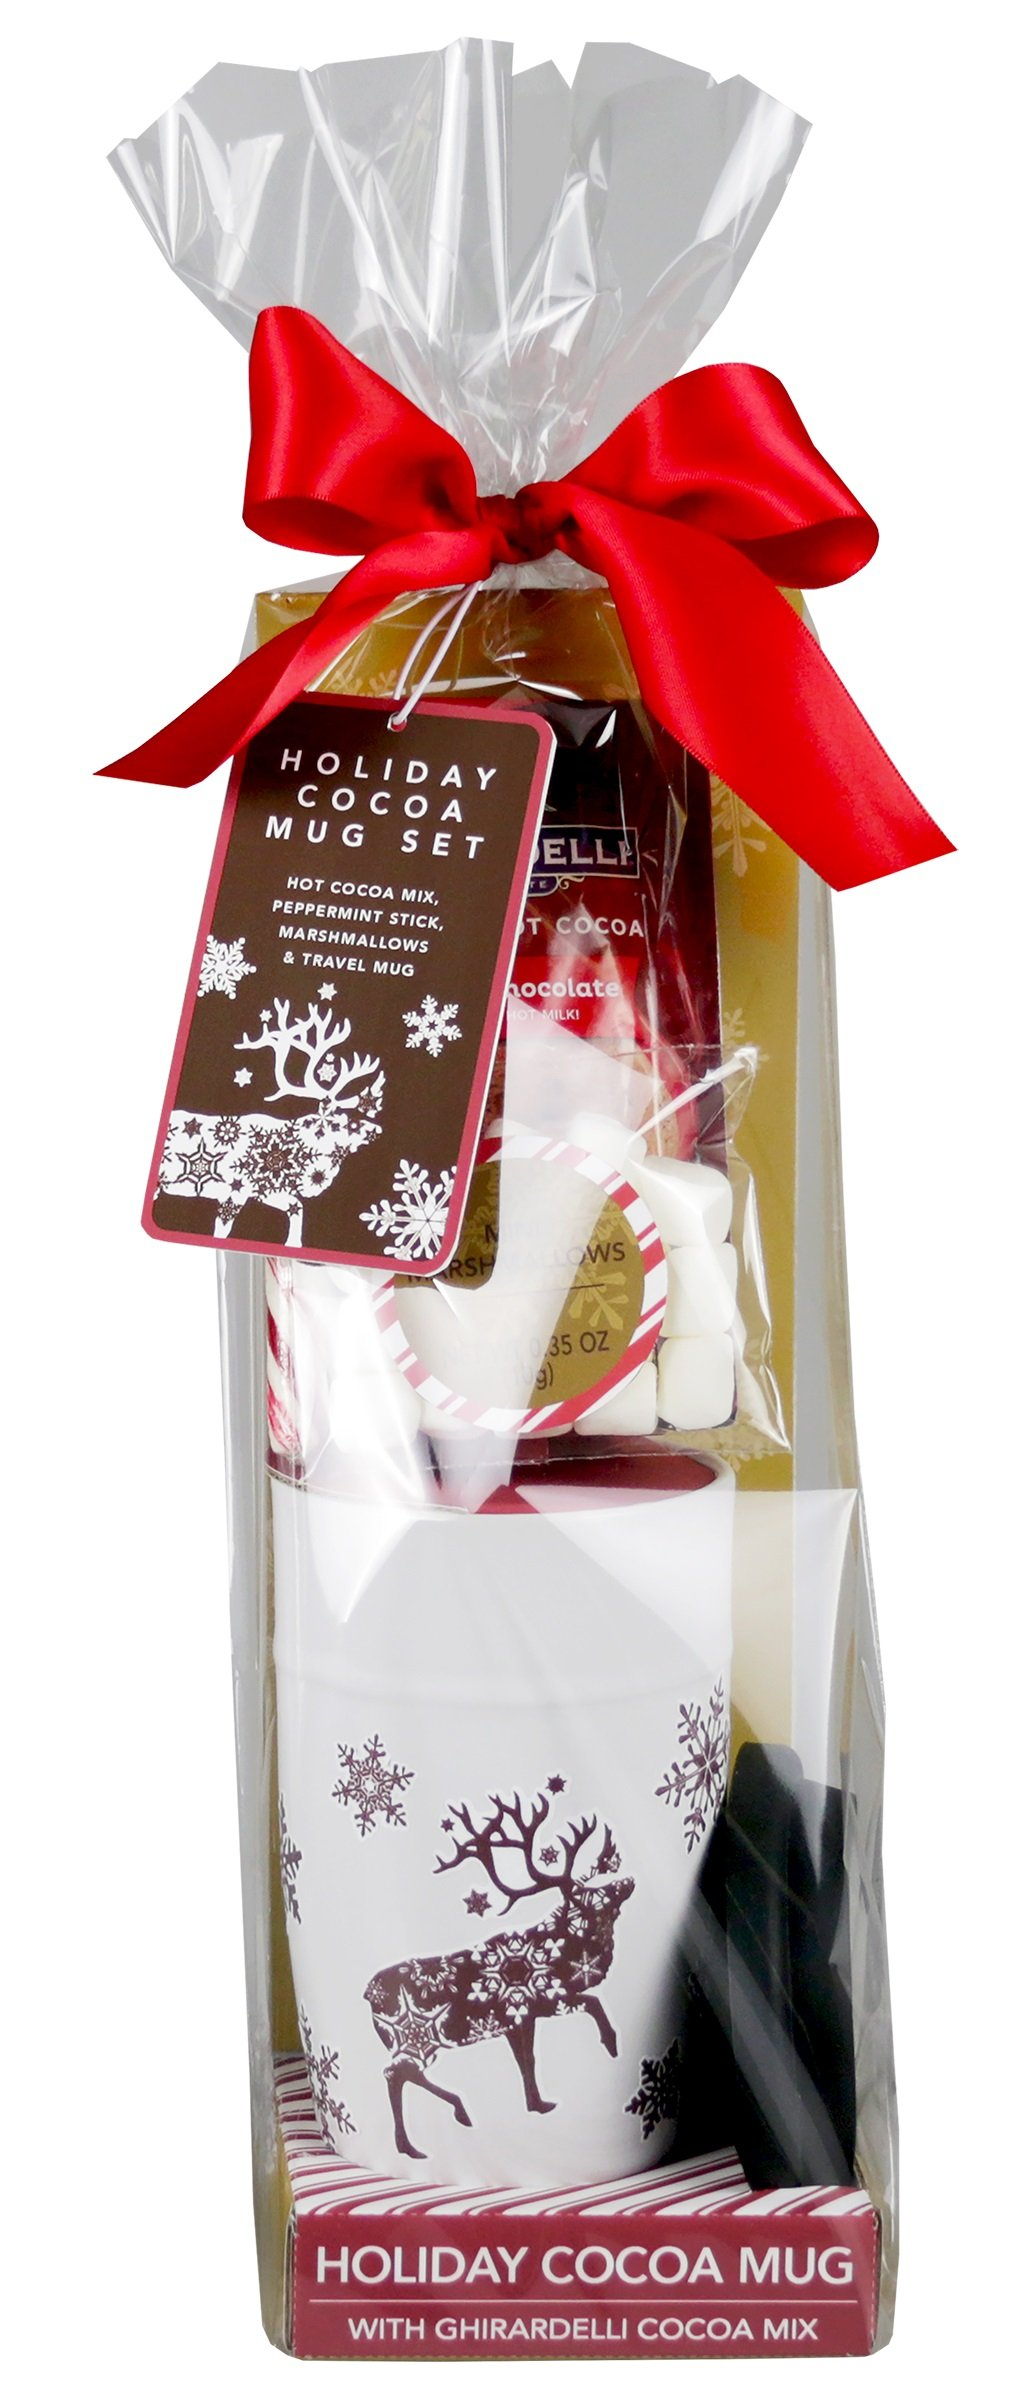 Ghirardelli Chocolate Holiday Travel Gift Set | Contains Ceramic Travel Mug, Hot Cocoa Mix, Peppermint Candy Cane and Mini Marshmallows